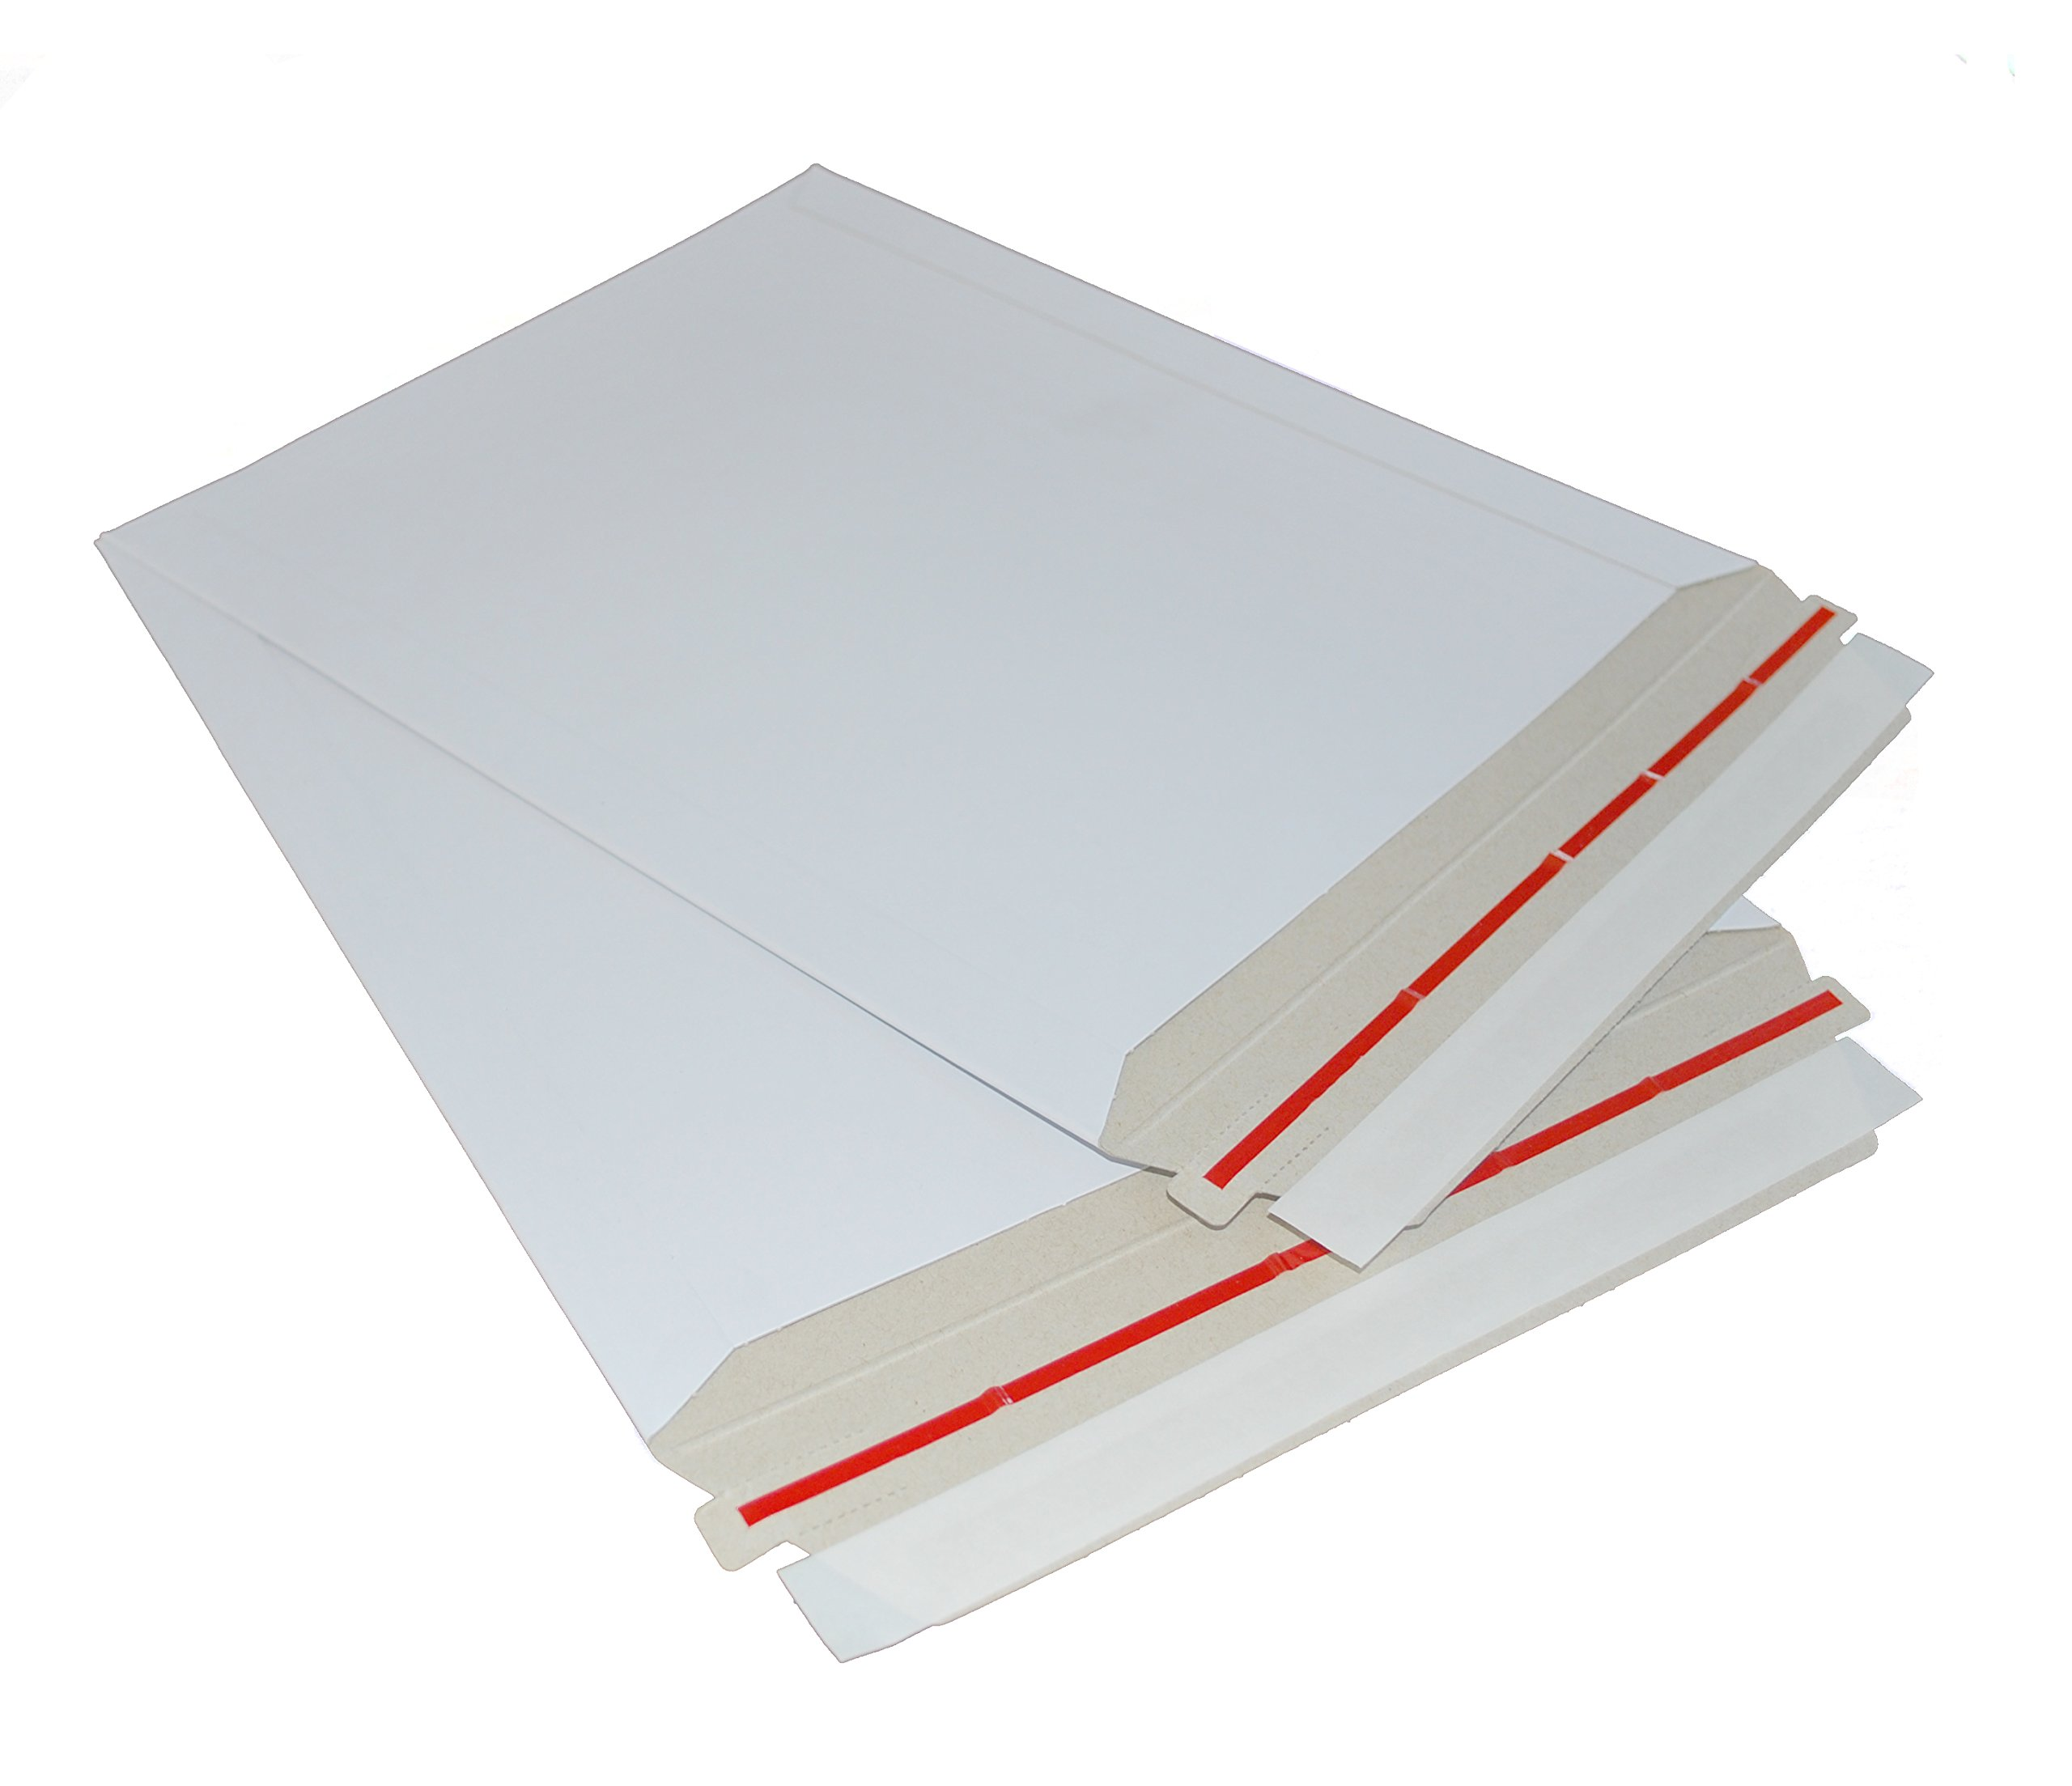 100 - 13x18 RIGID PHOTO FLAT MAILERS ENVELOPES by ValueMailers